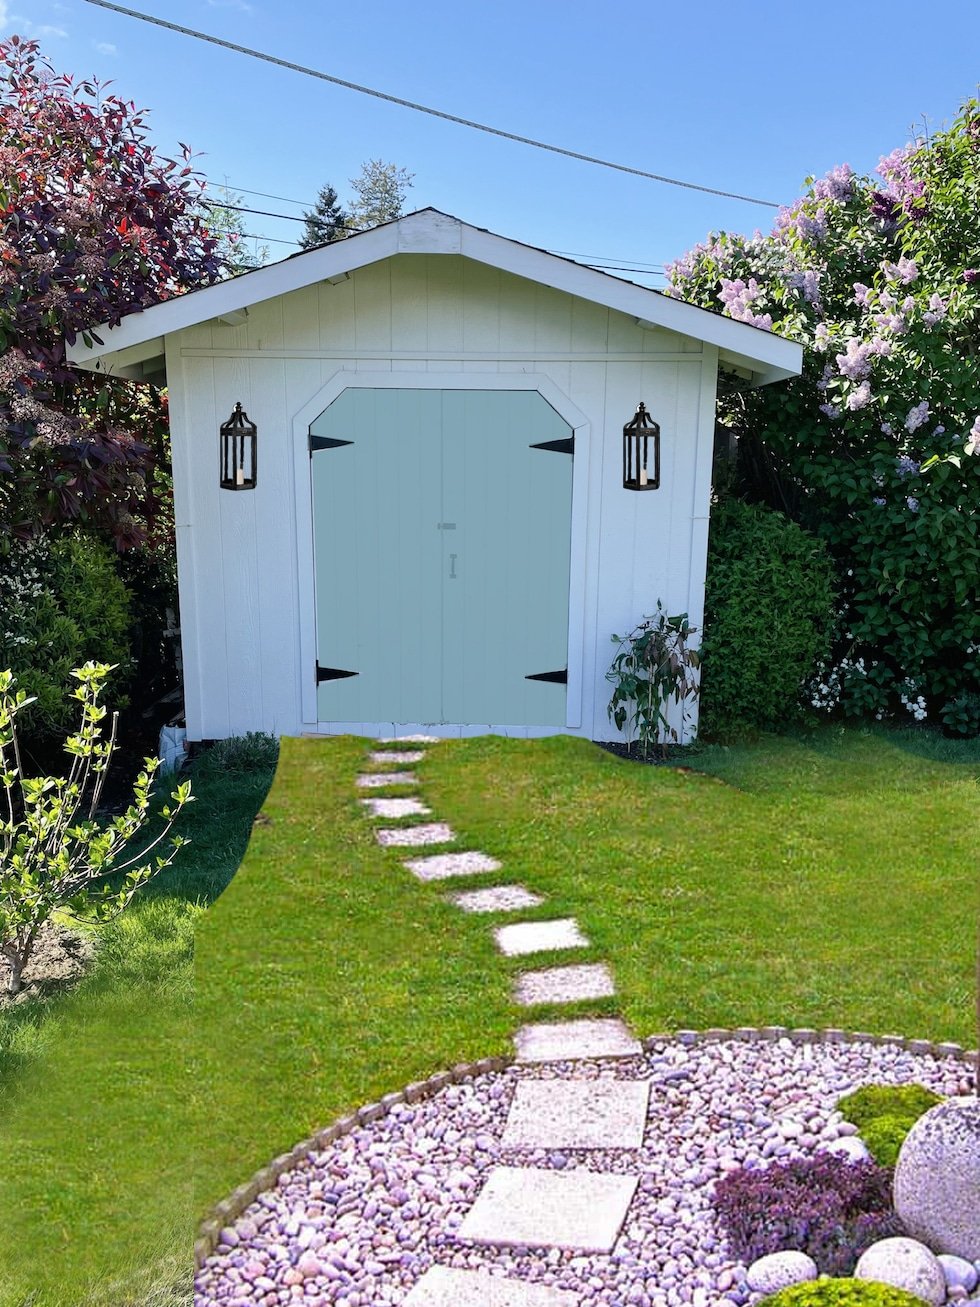 Help me redesign our garden shed (+ our tip for visualizing design changes)